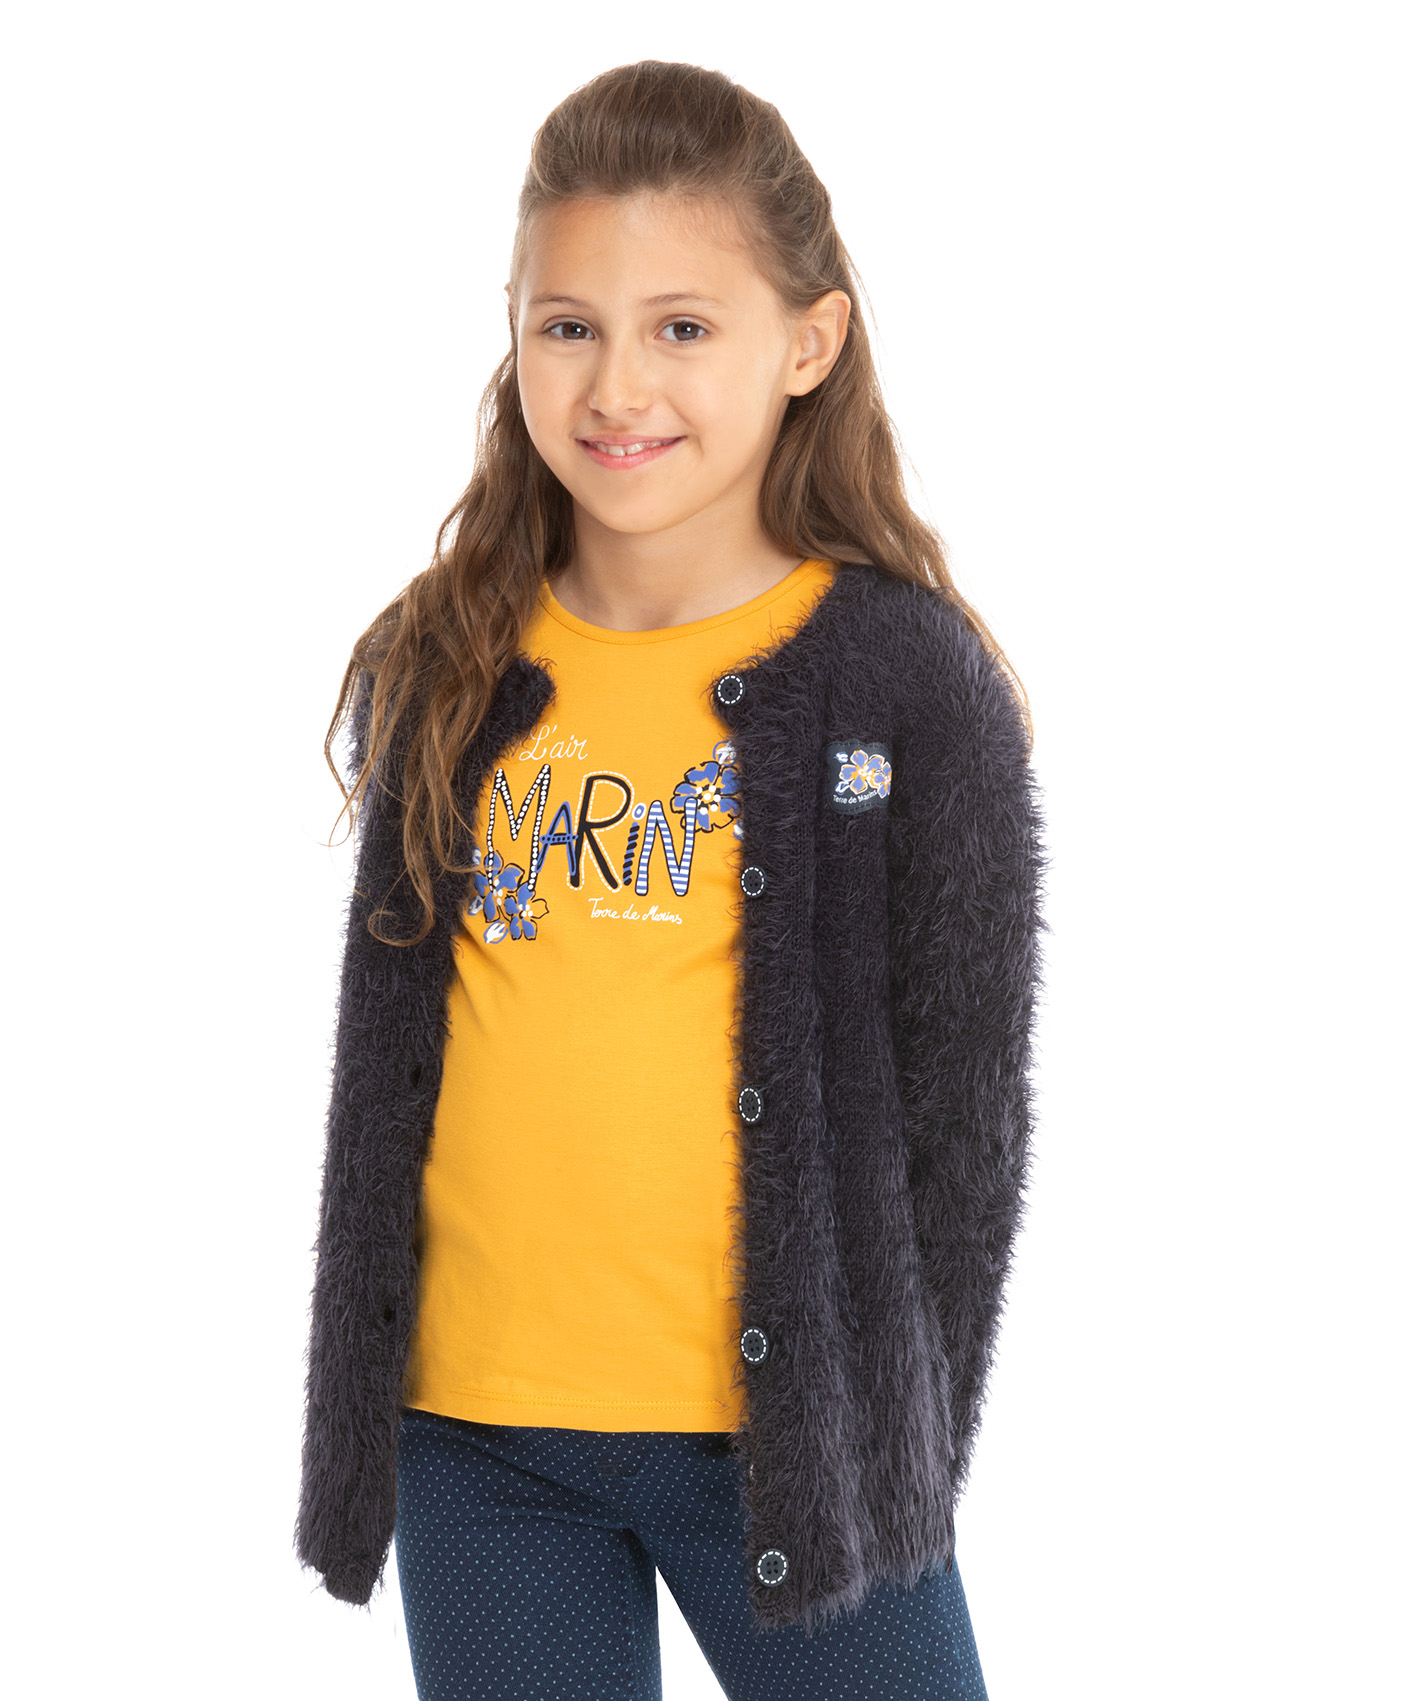 Cardigan fille - Mode marine Enfant